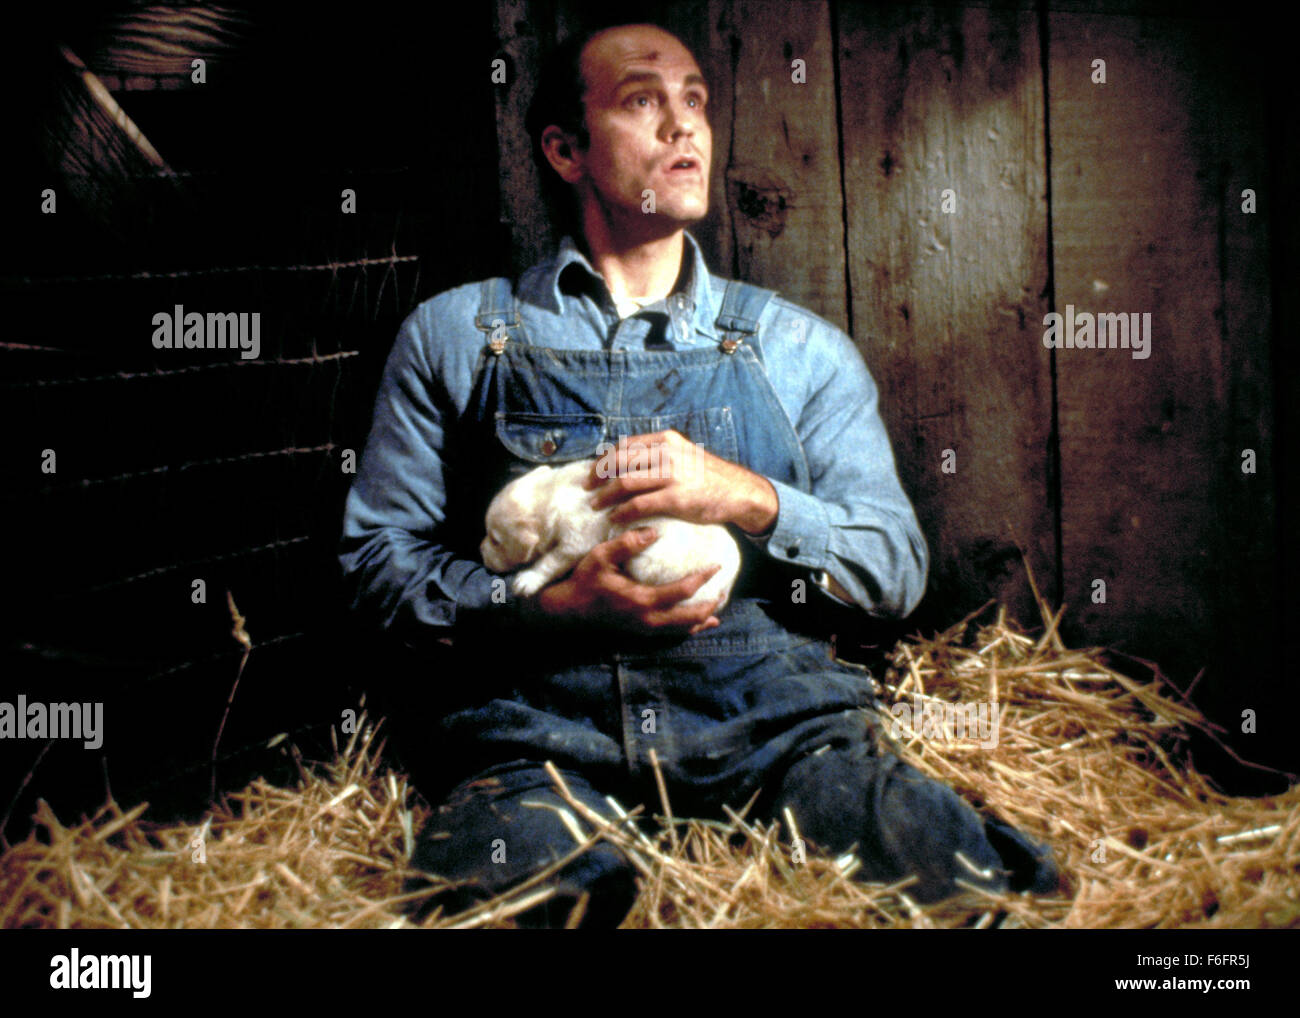 lennie george in of mice men essay Of mice and men persuasive essay  in this story of mice and men by john steinbeck,  it was better for george to kill lennie, because he knew how to comfort him .